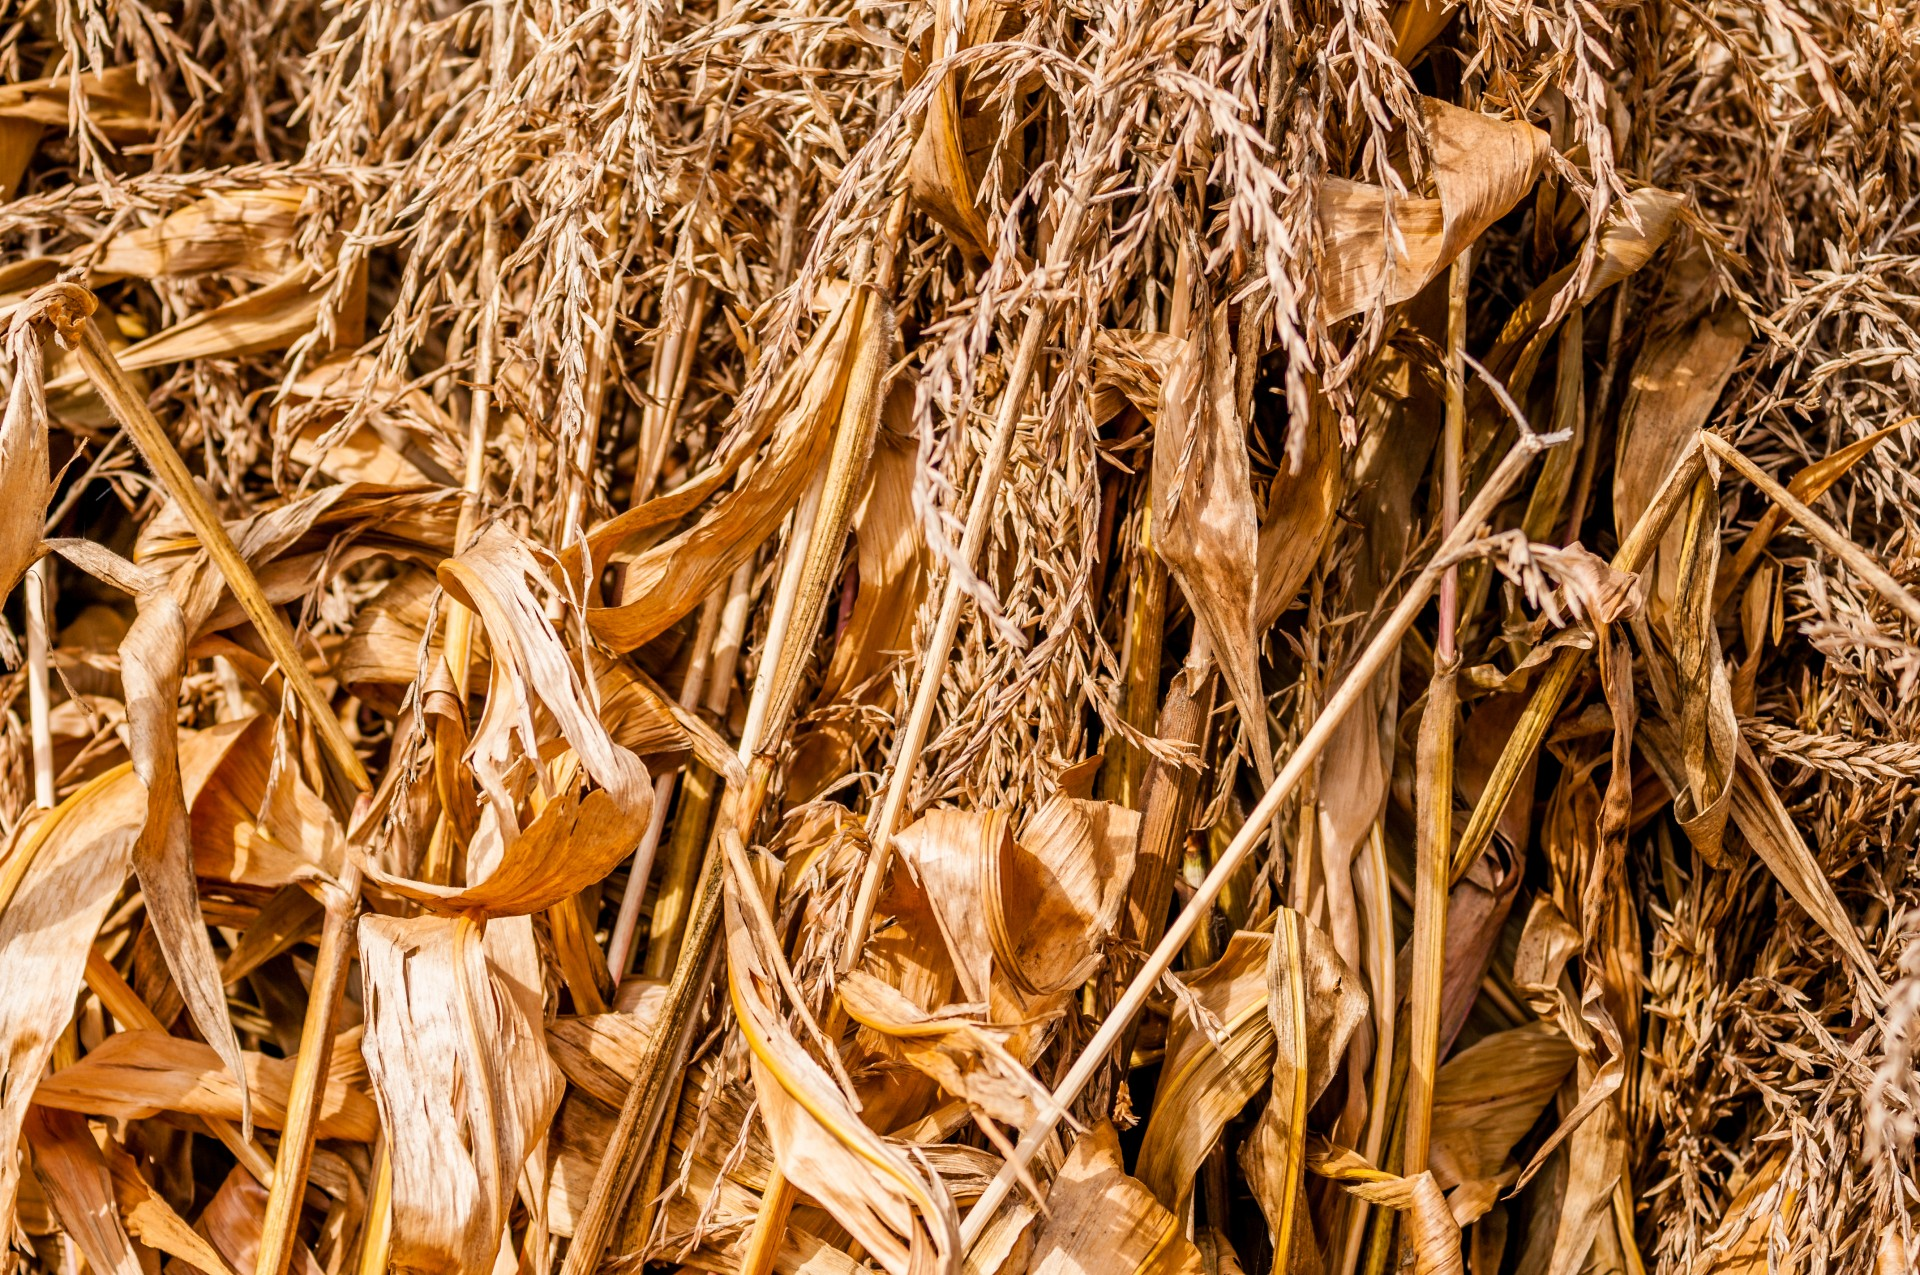 Picturesque corn stalks - save them for fall decorating!